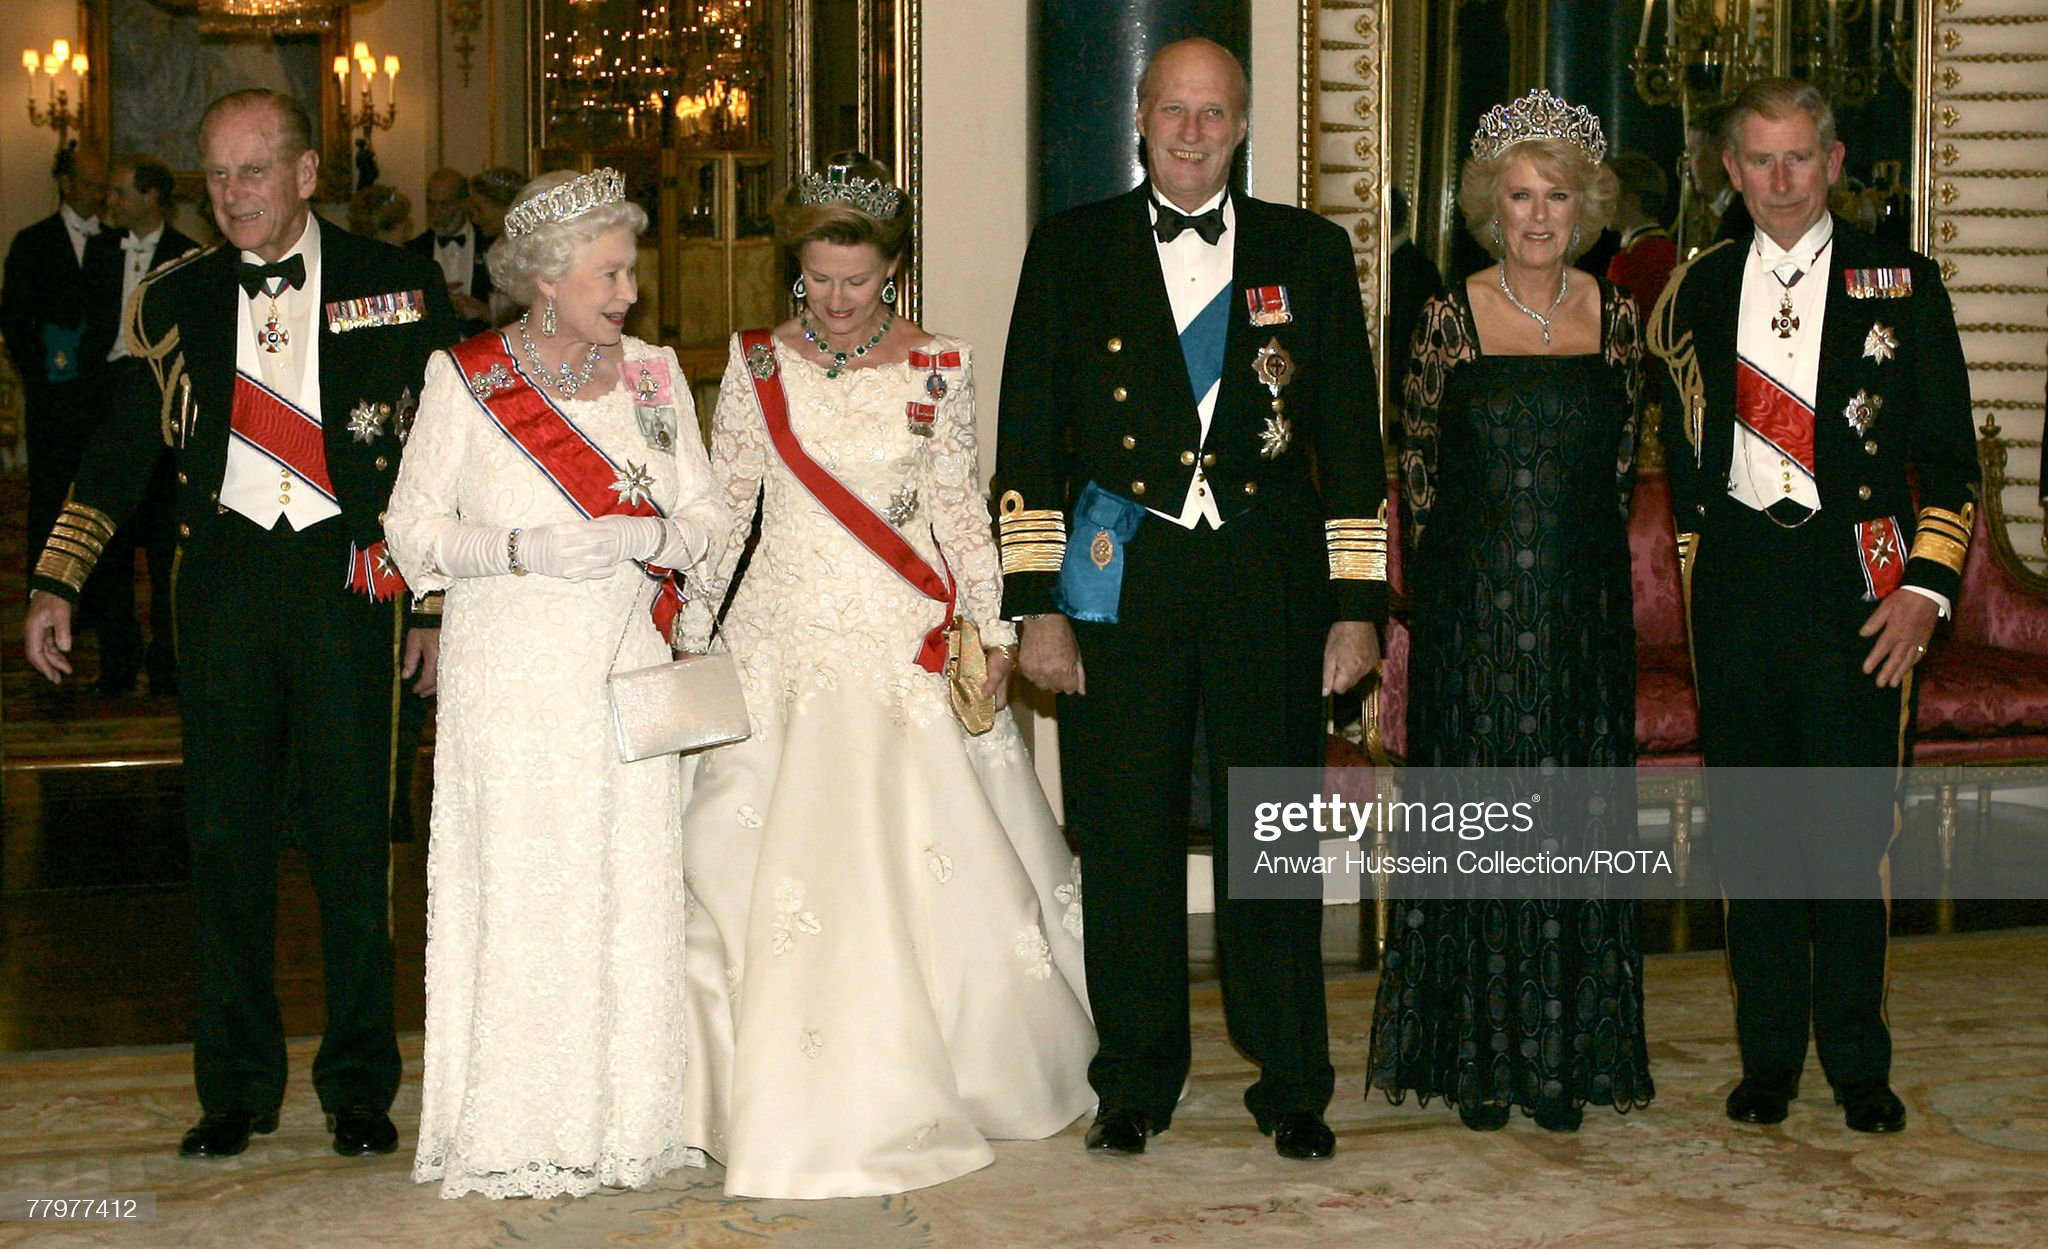 Norwegian Royals State Visit to the United Kingdom - October 25, 2005 : News Photo